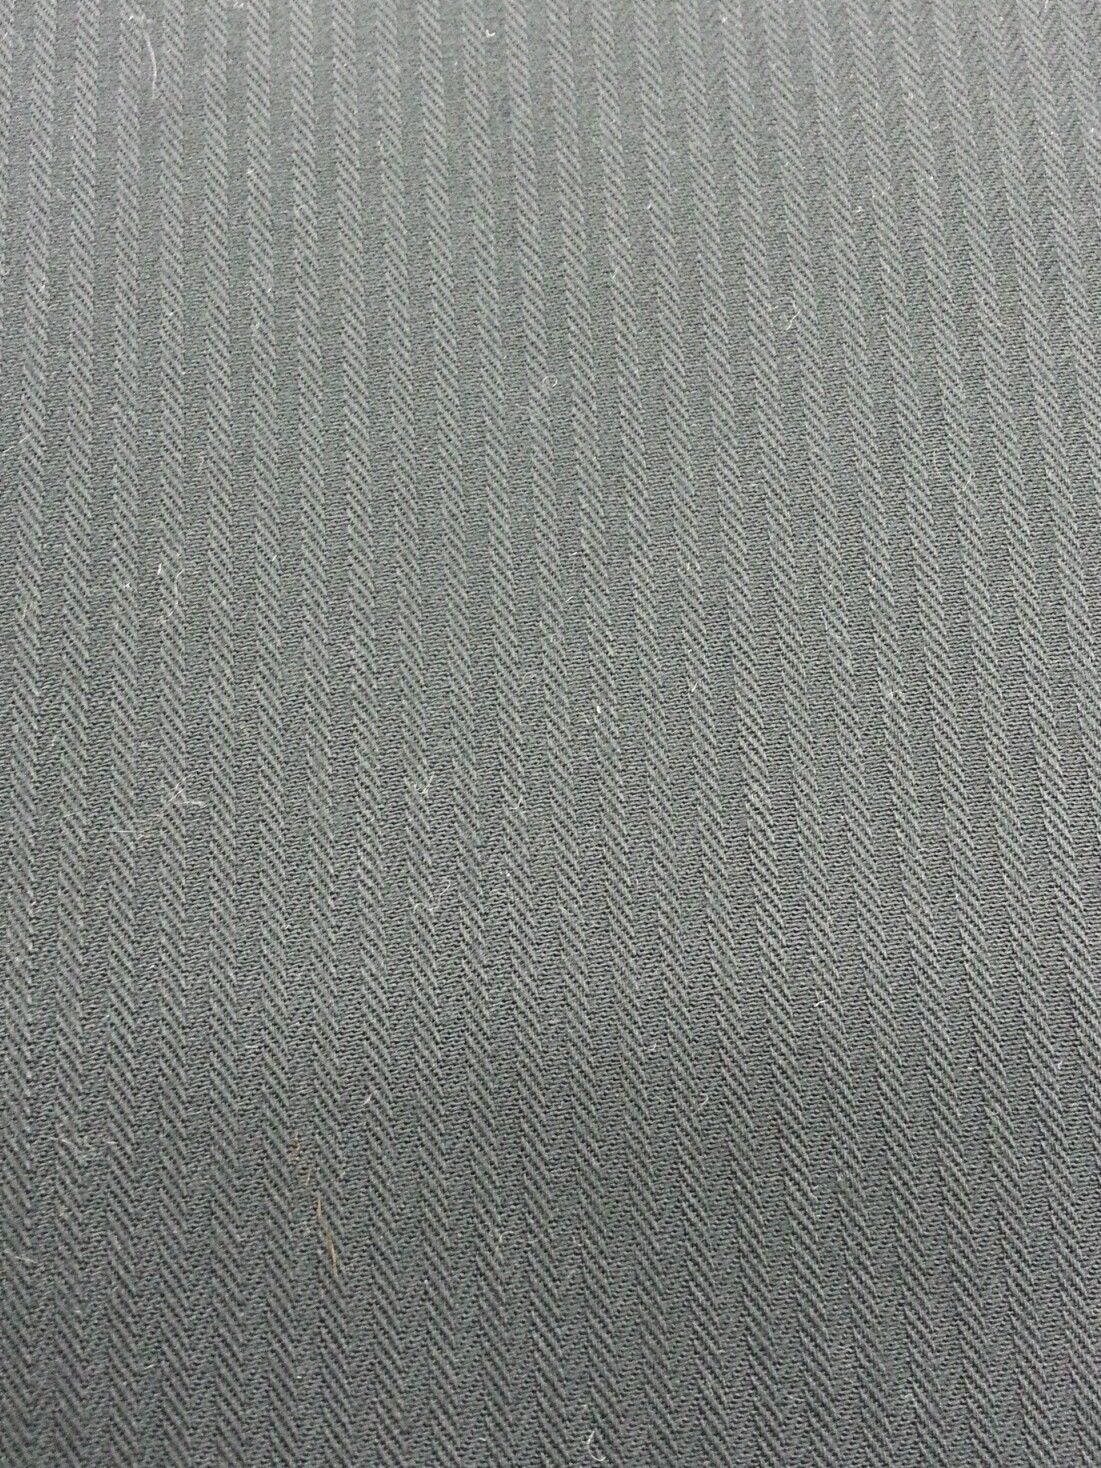 Navy Blue HeringBone Italian All Wool Worsted suiting fabric 5+ Yards-MSRP $695